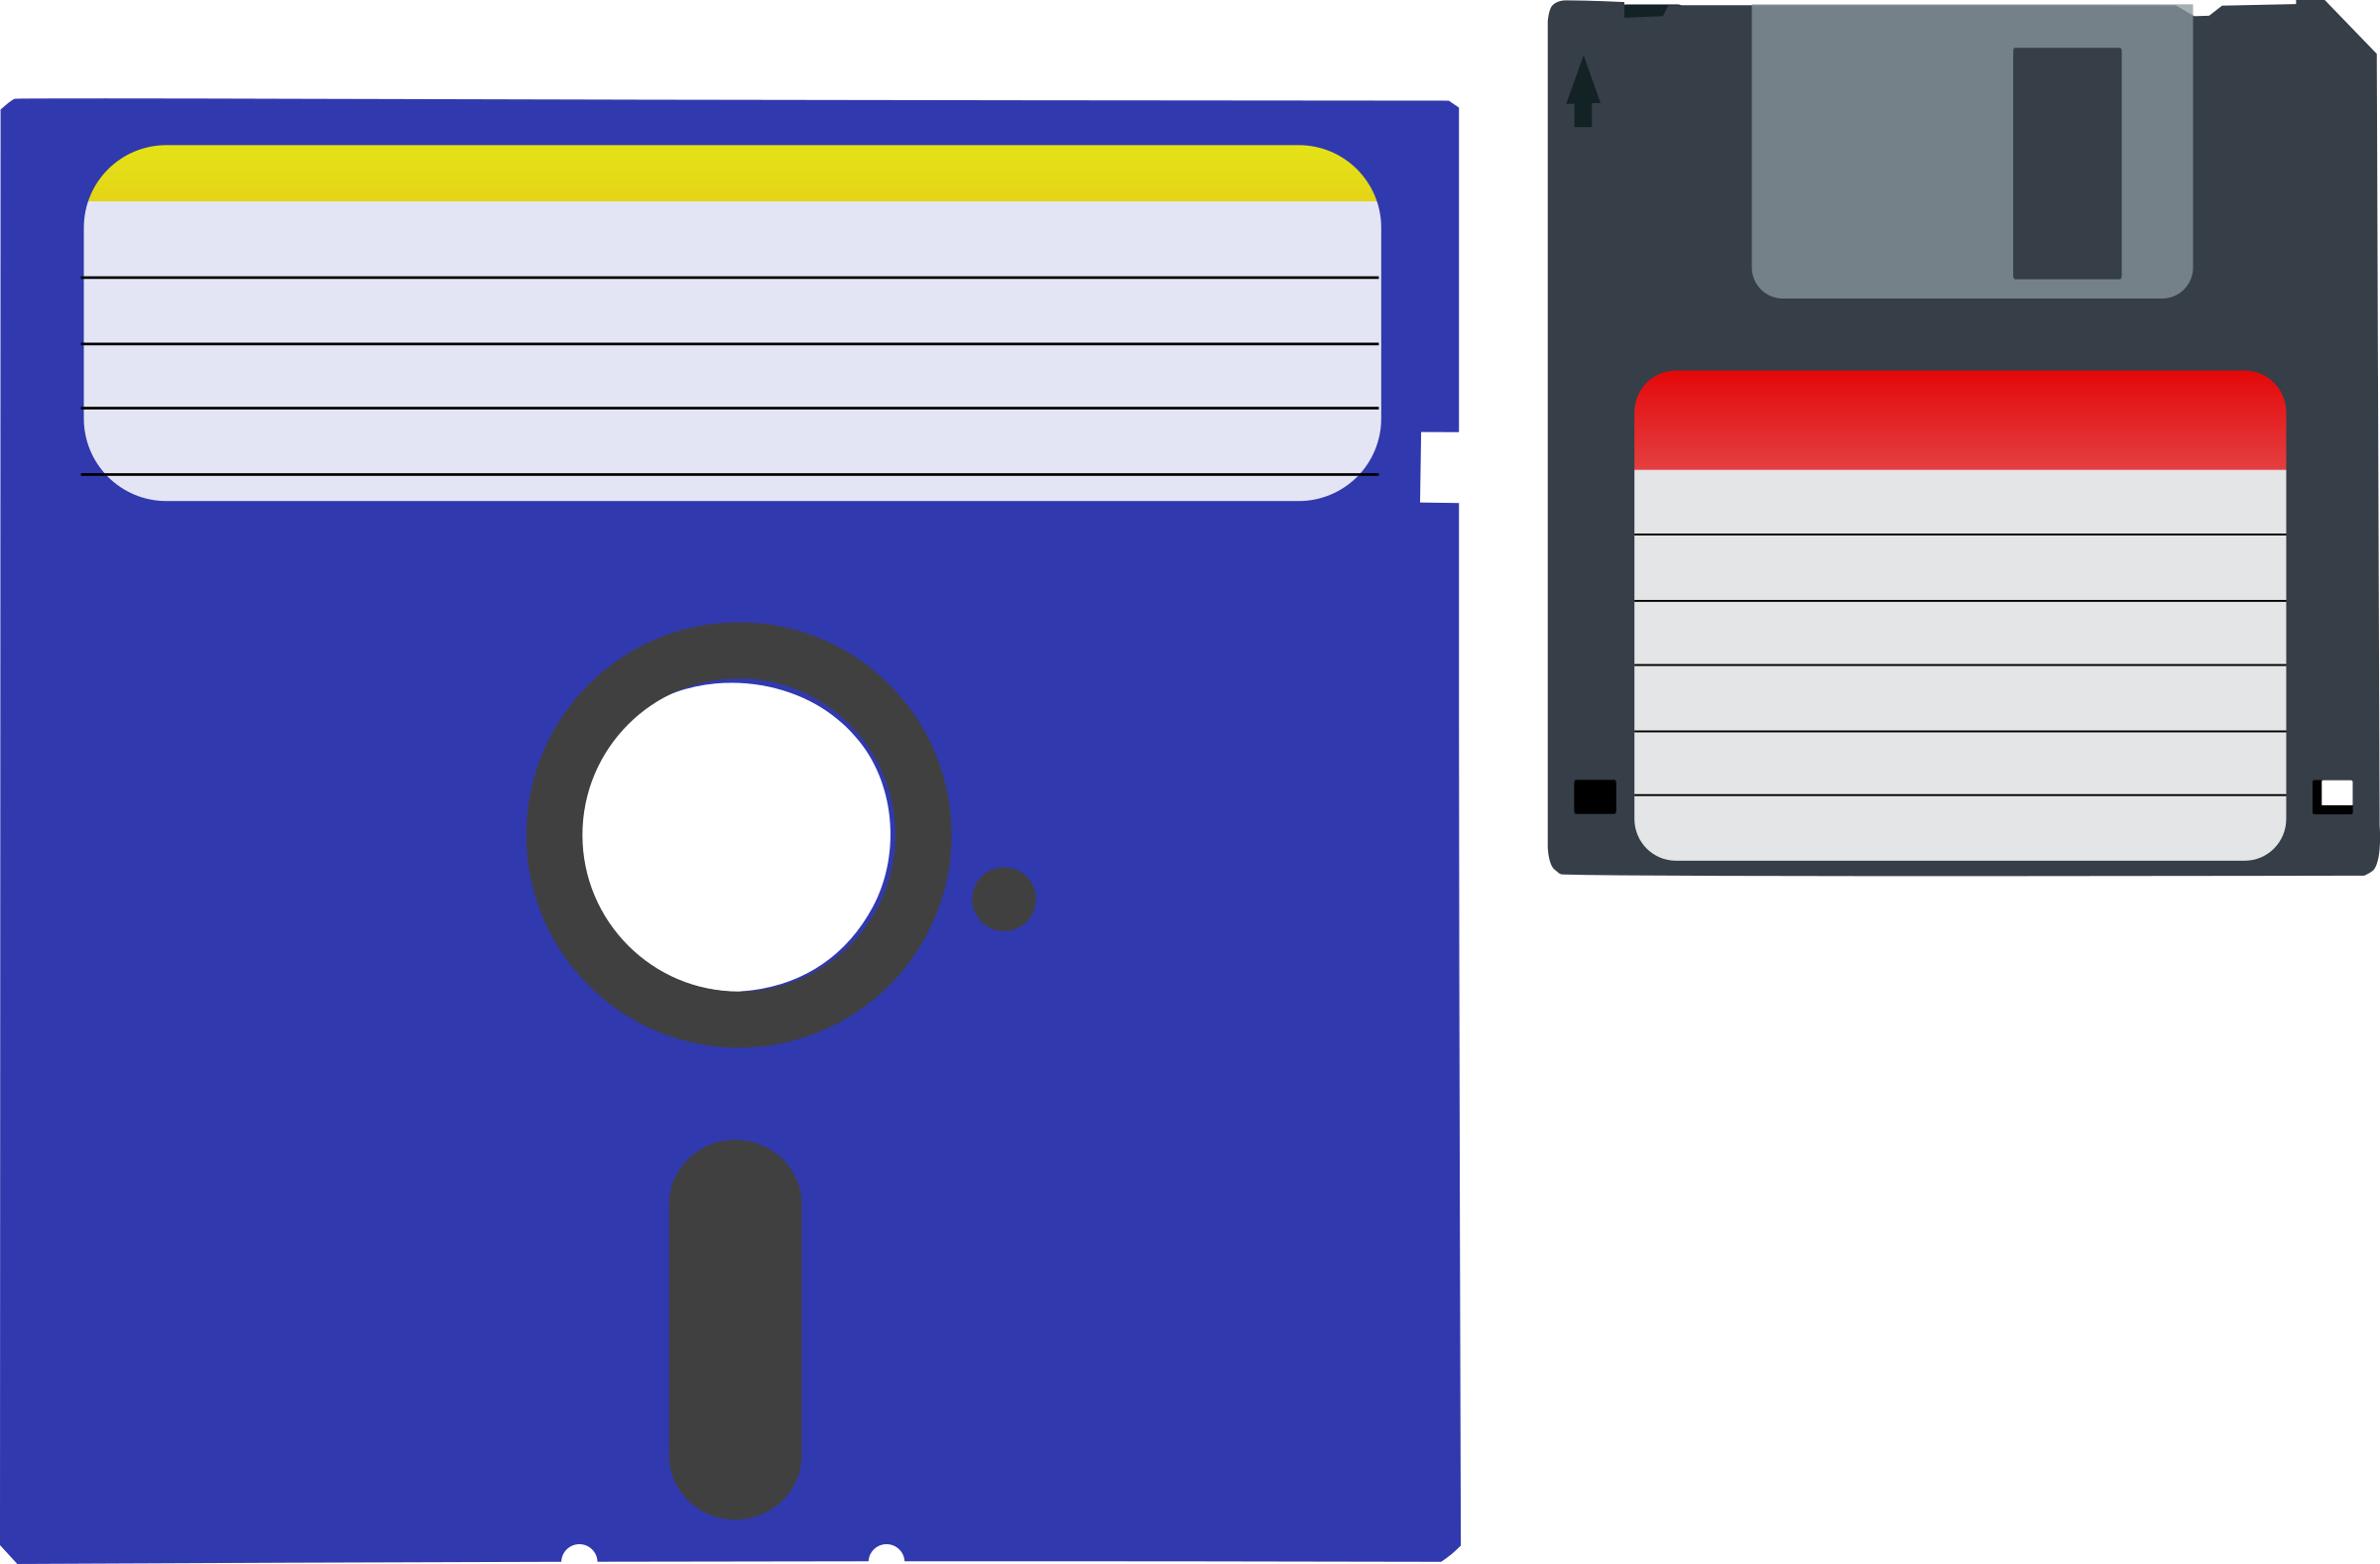 Floppy Disks by Ramchand